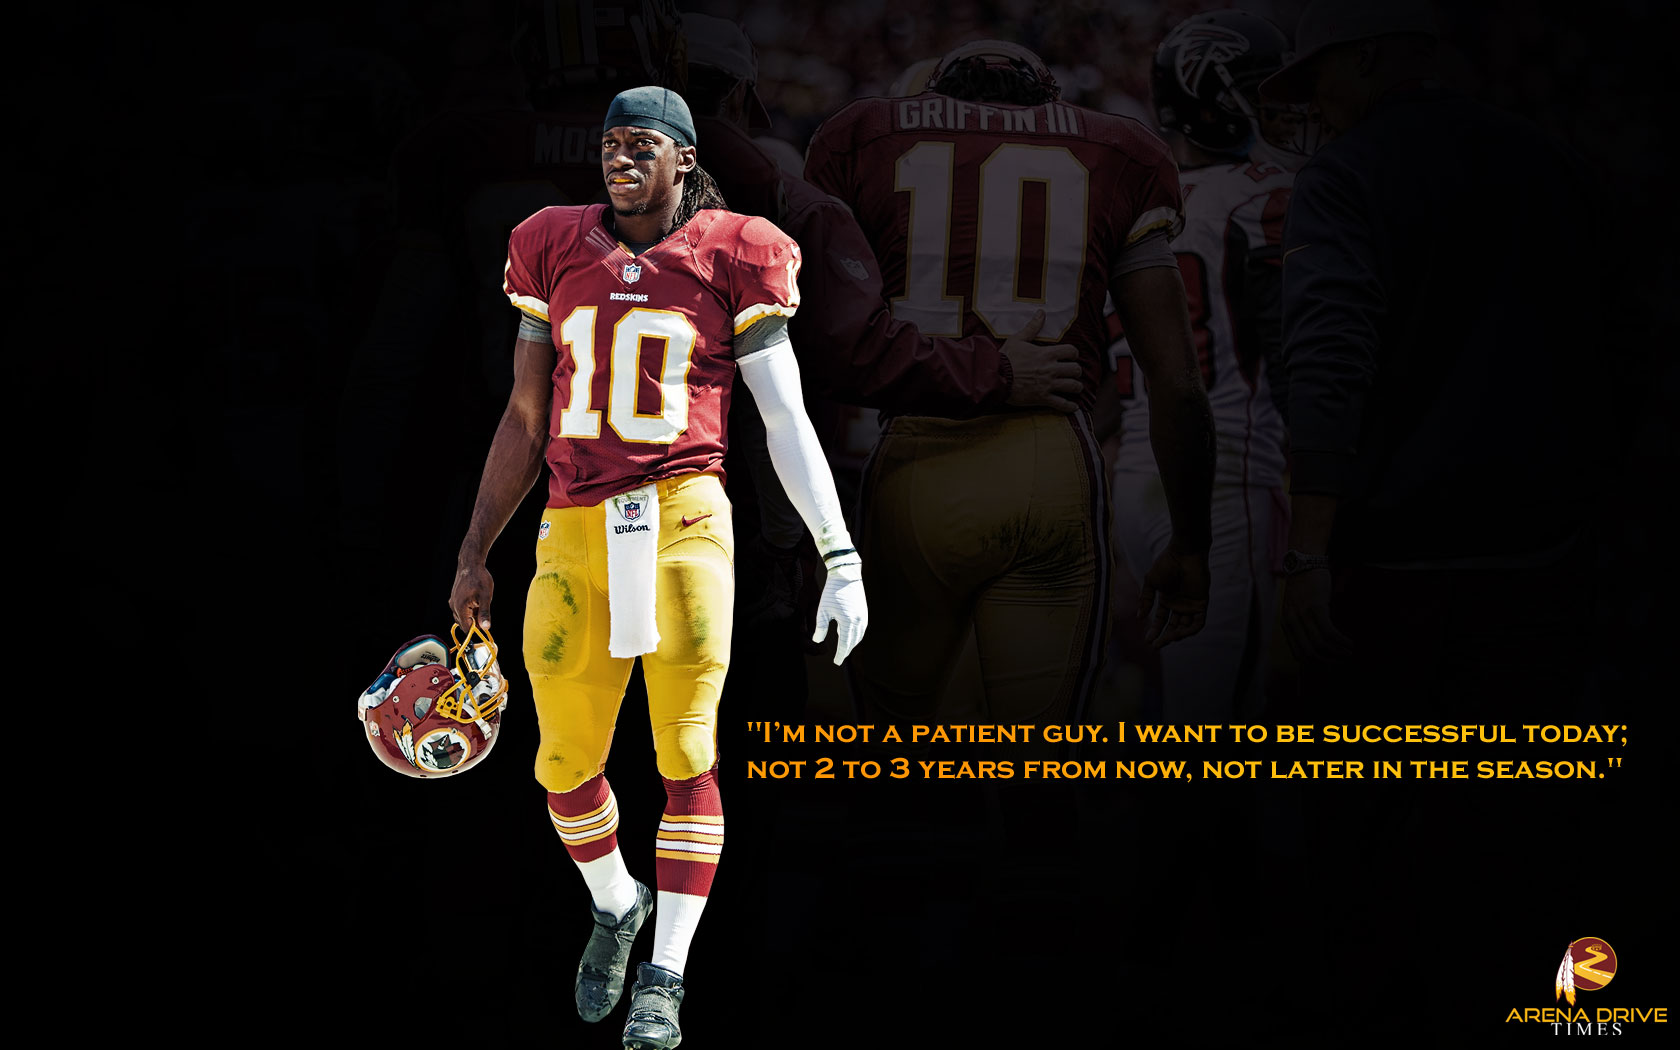 More Washington Redskins wallpaper wallpapers 1680x1050